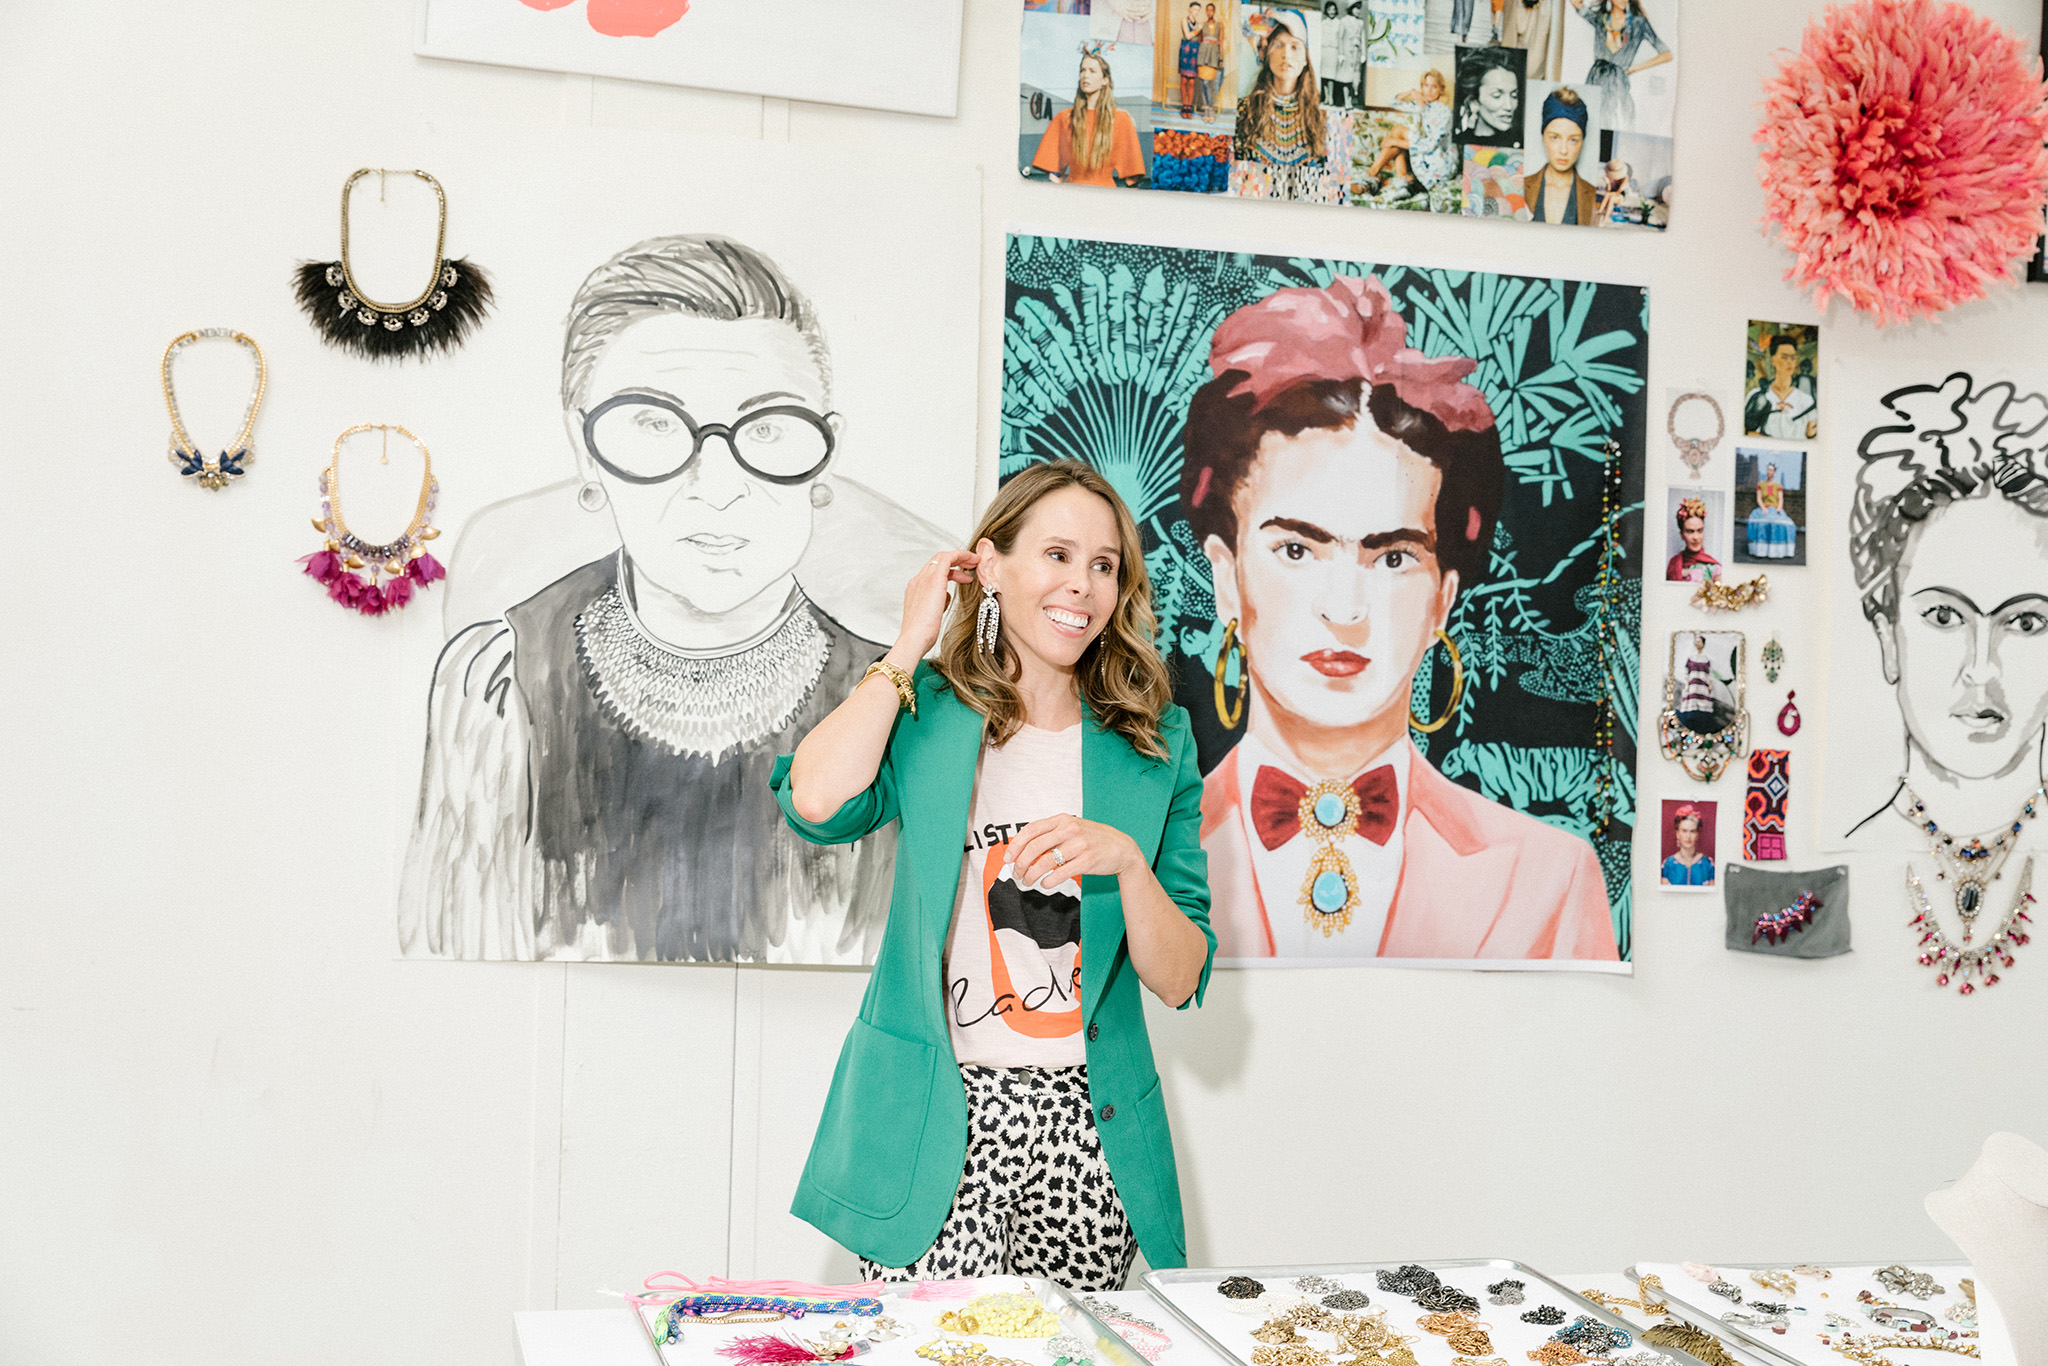 Stella and Dot creative director Blythe Harris at her creative space in Sausalito, CA, June 4, 2019. Jason Henry for WWDStella and Dot creative director Blythe Harris